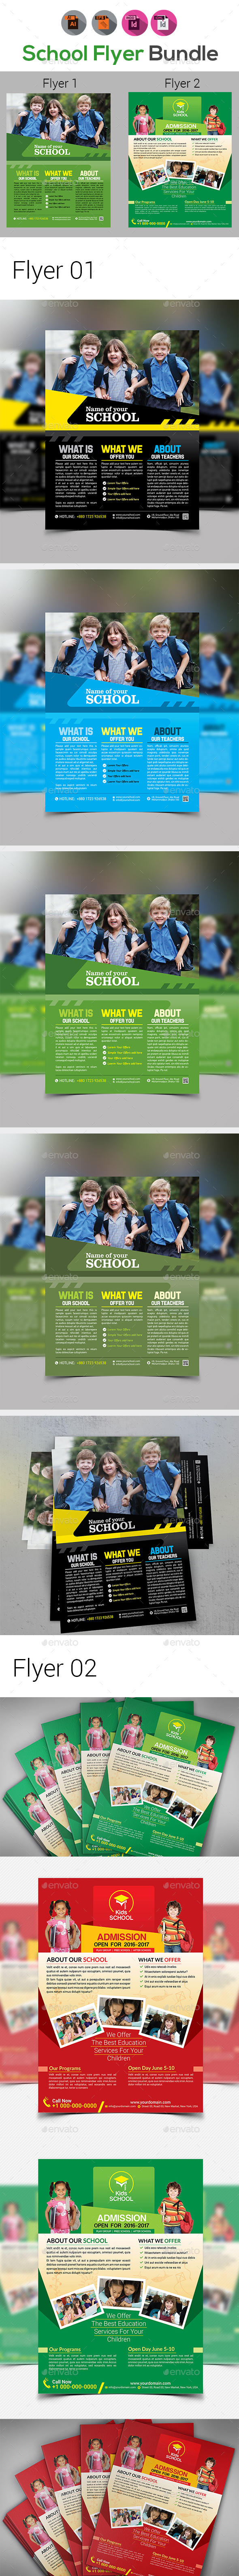 School Flyer Bundle V4 - Corporate Flyers